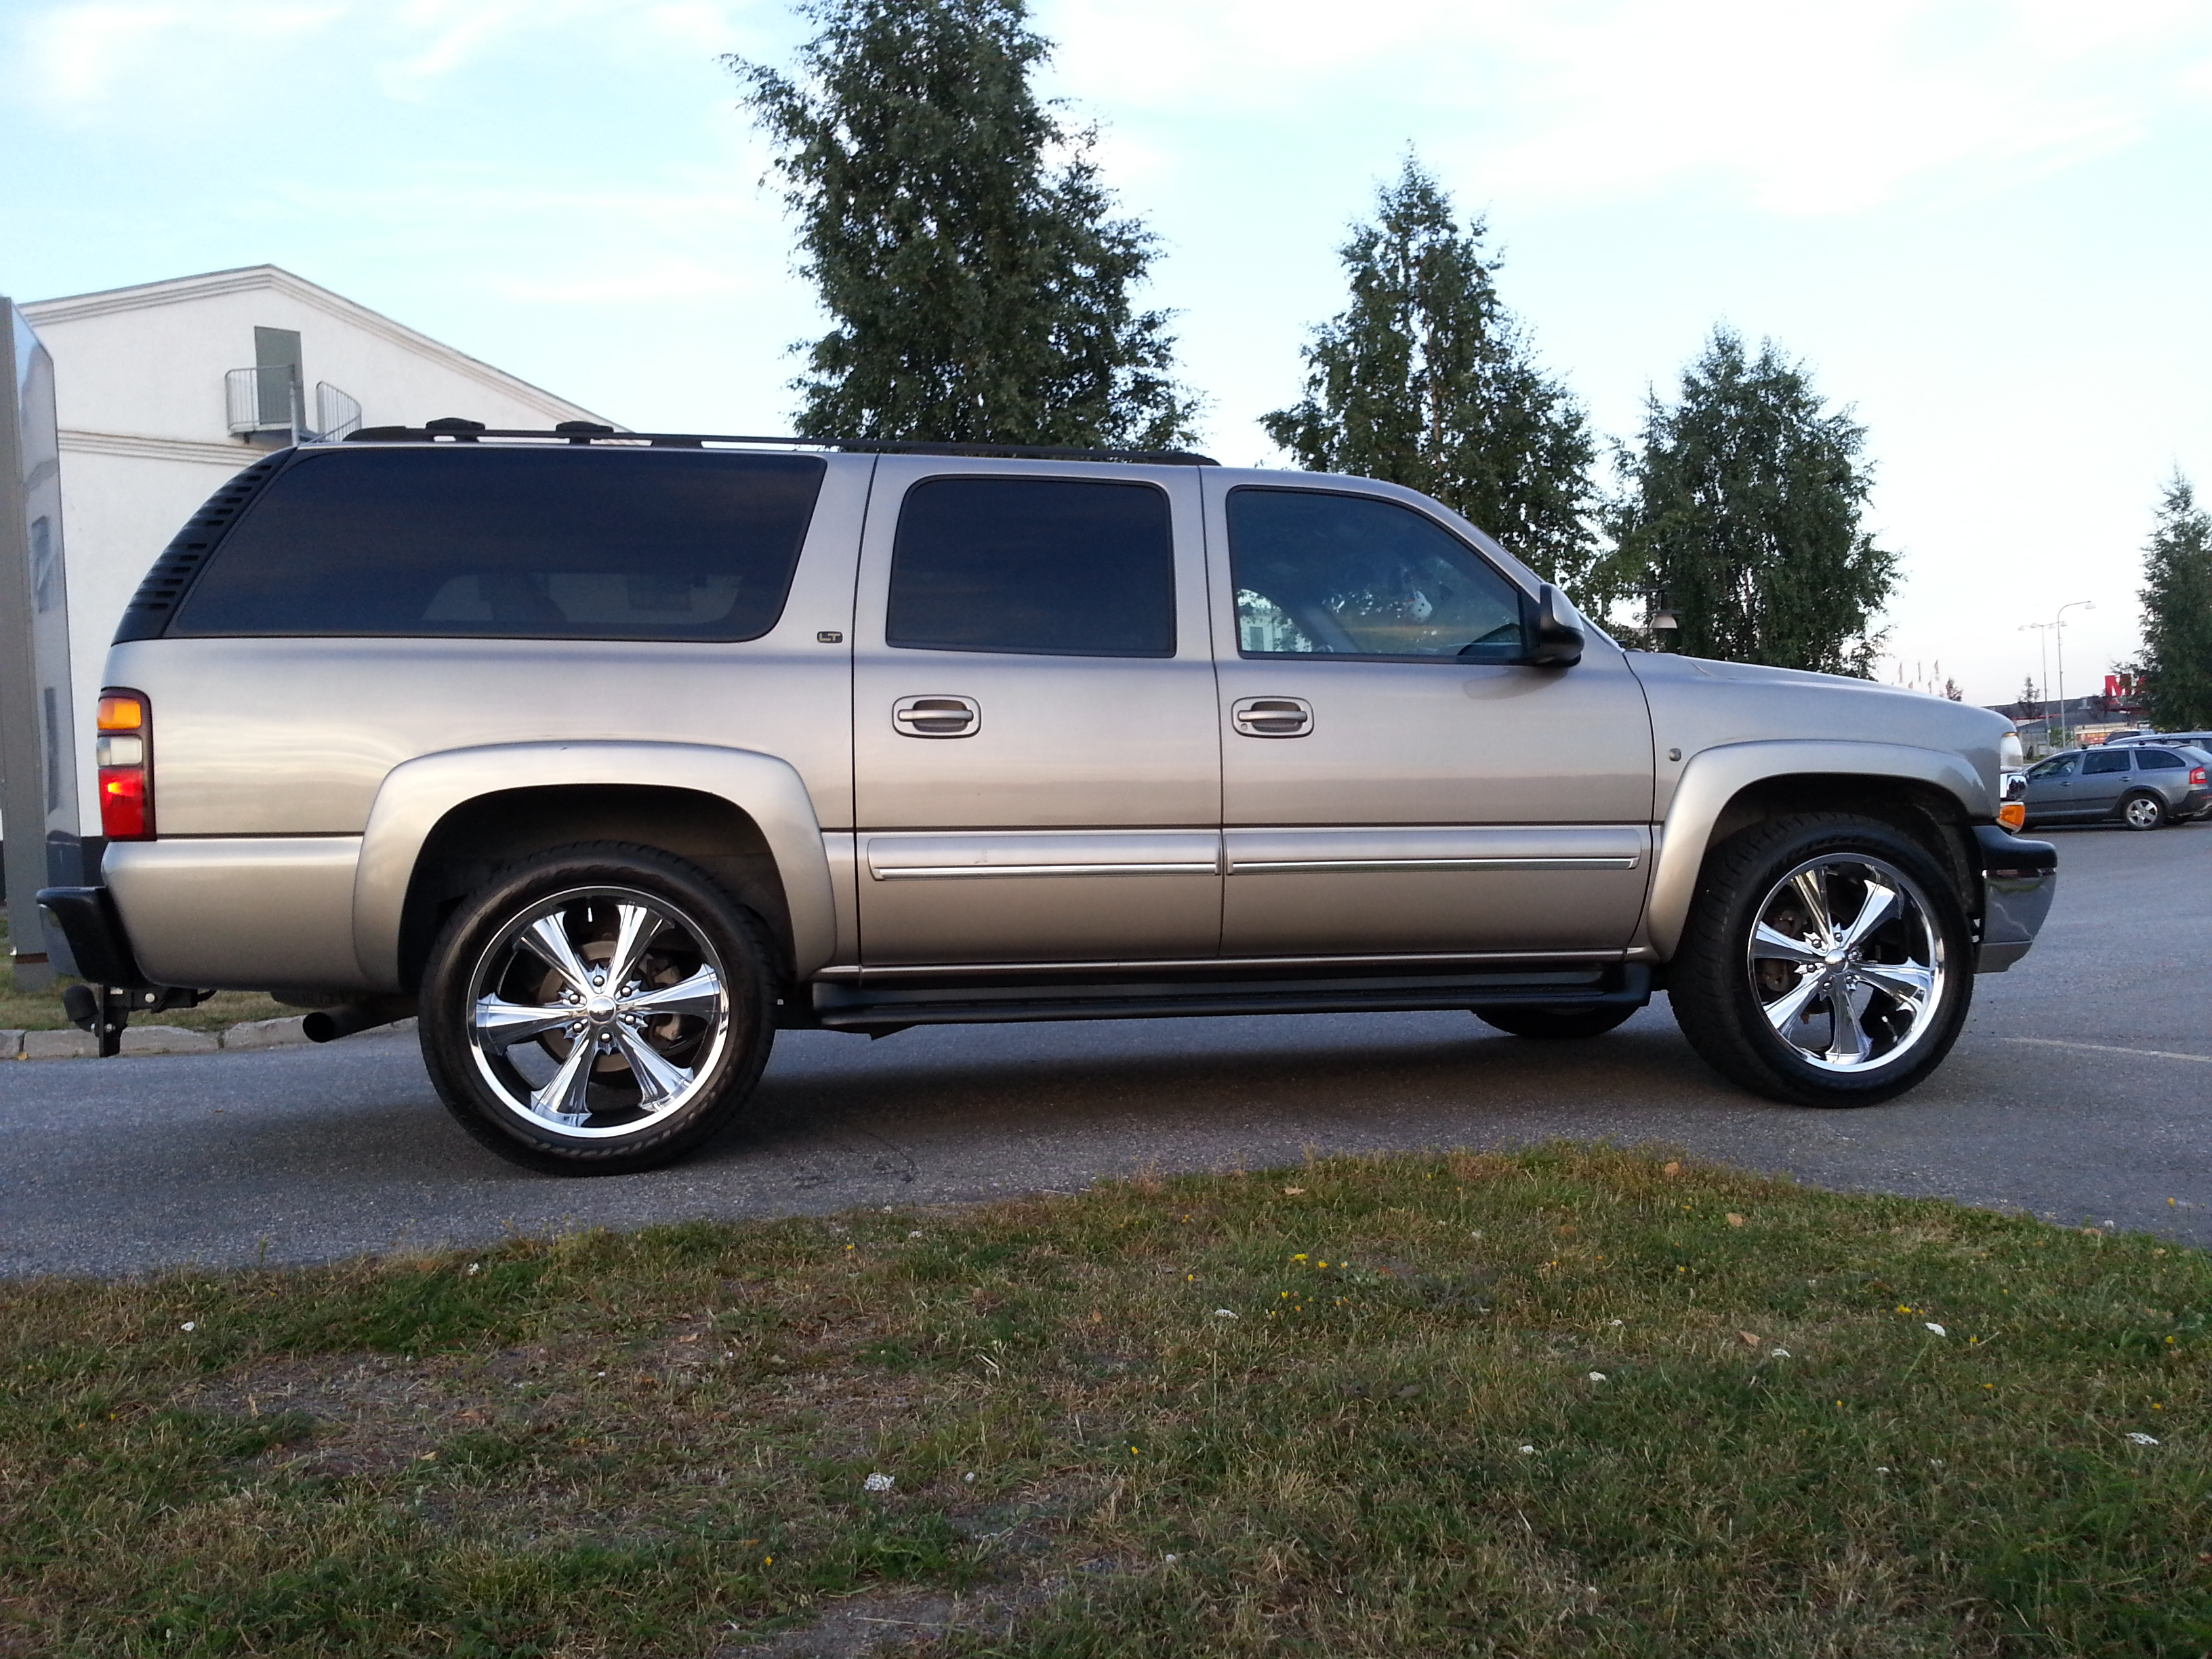 2007 chevrolet suburban reviews pictures and prices us autos post. Black Bedroom Furniture Sets. Home Design Ideas